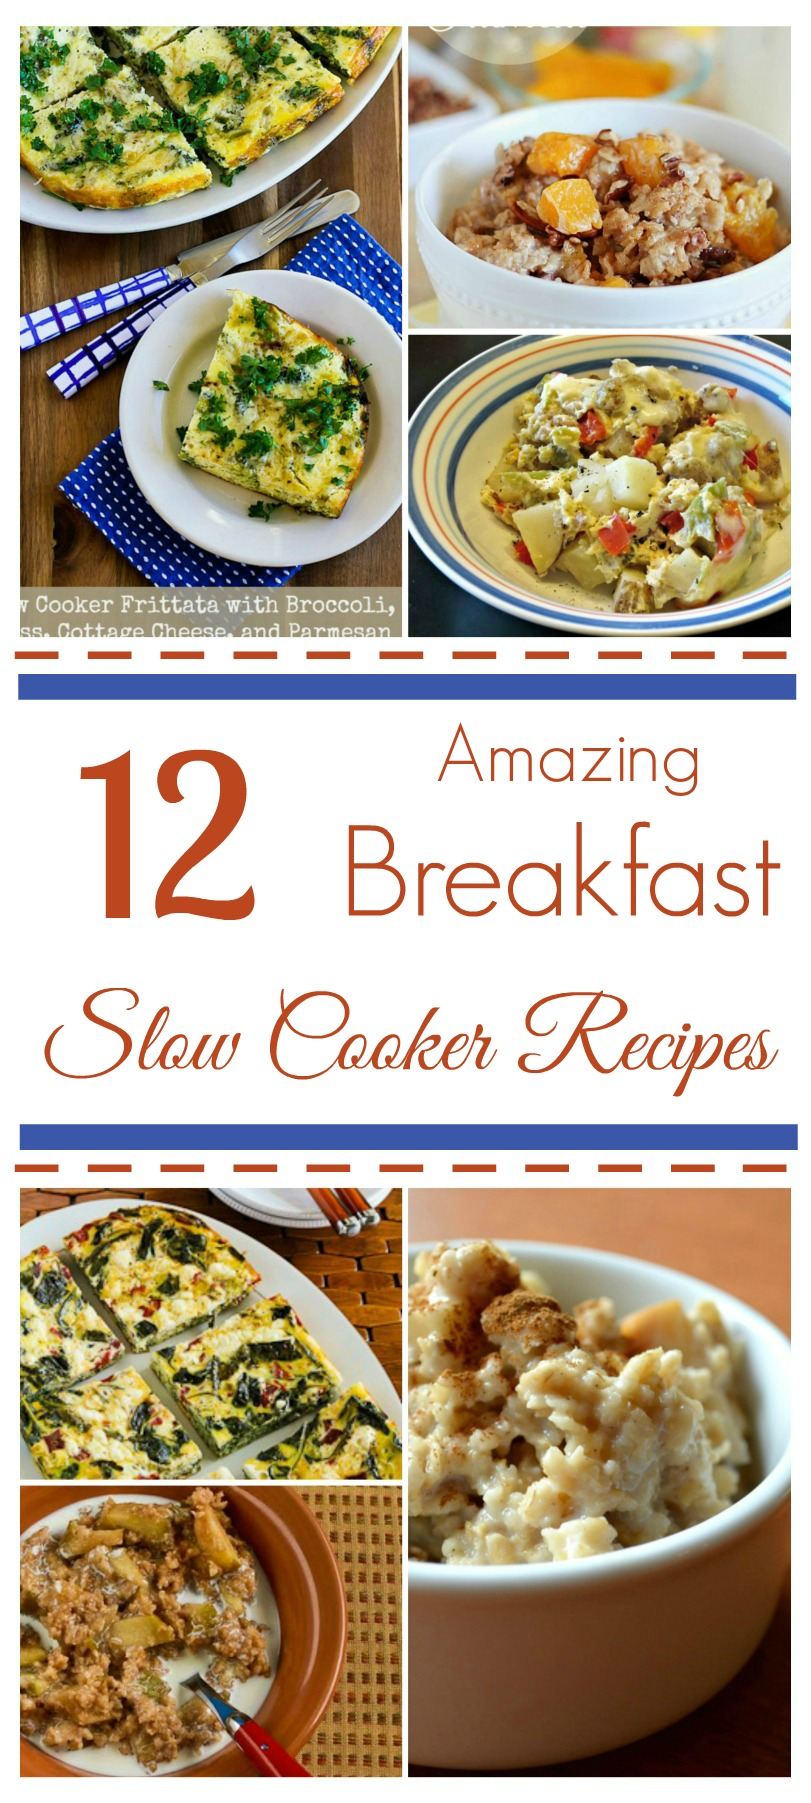 Looking for some new recipes for your crockpot? Check out this amazing breakfast slow cooker round up here!